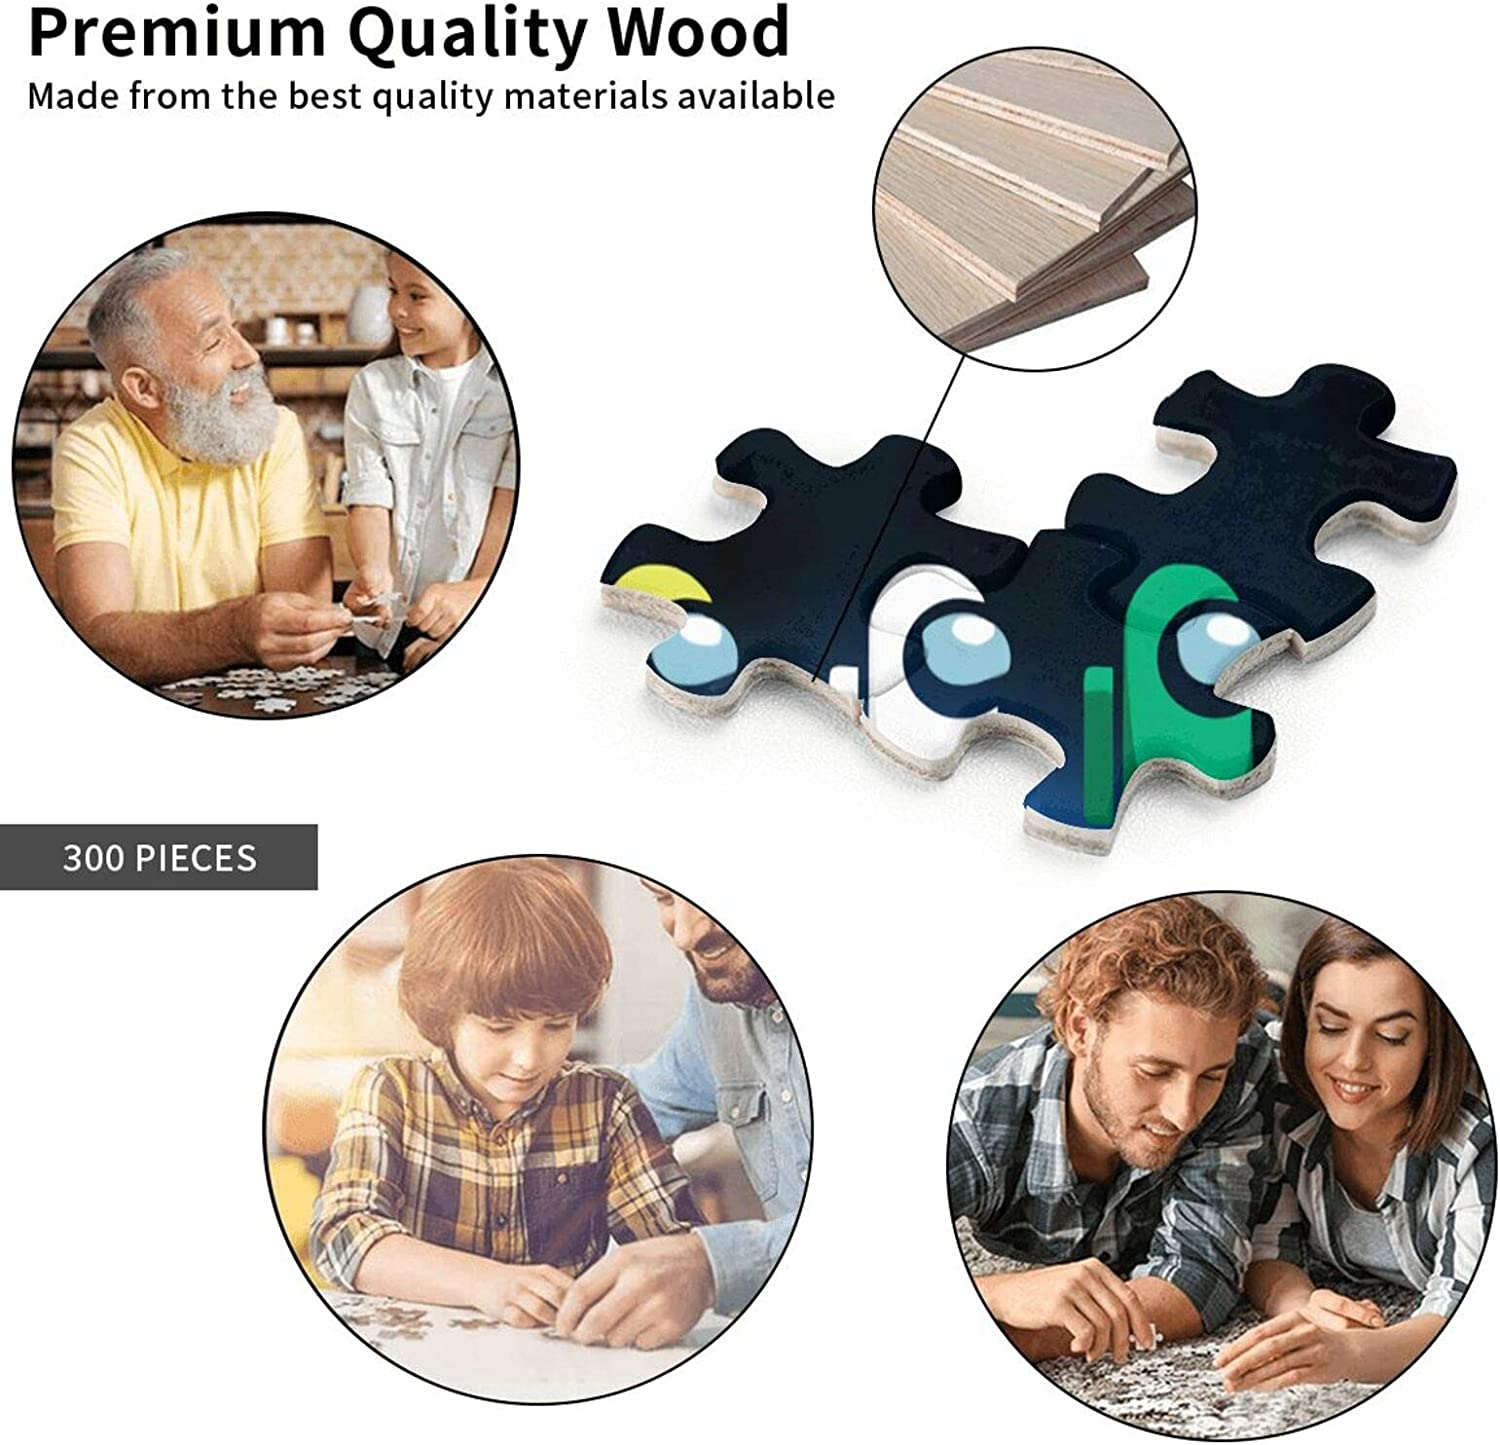 Among Us Puzzles 300 Piece Jigsaw Puzzles Can Fit Together Perfectly Adult Child Educational Toys and Fun Games